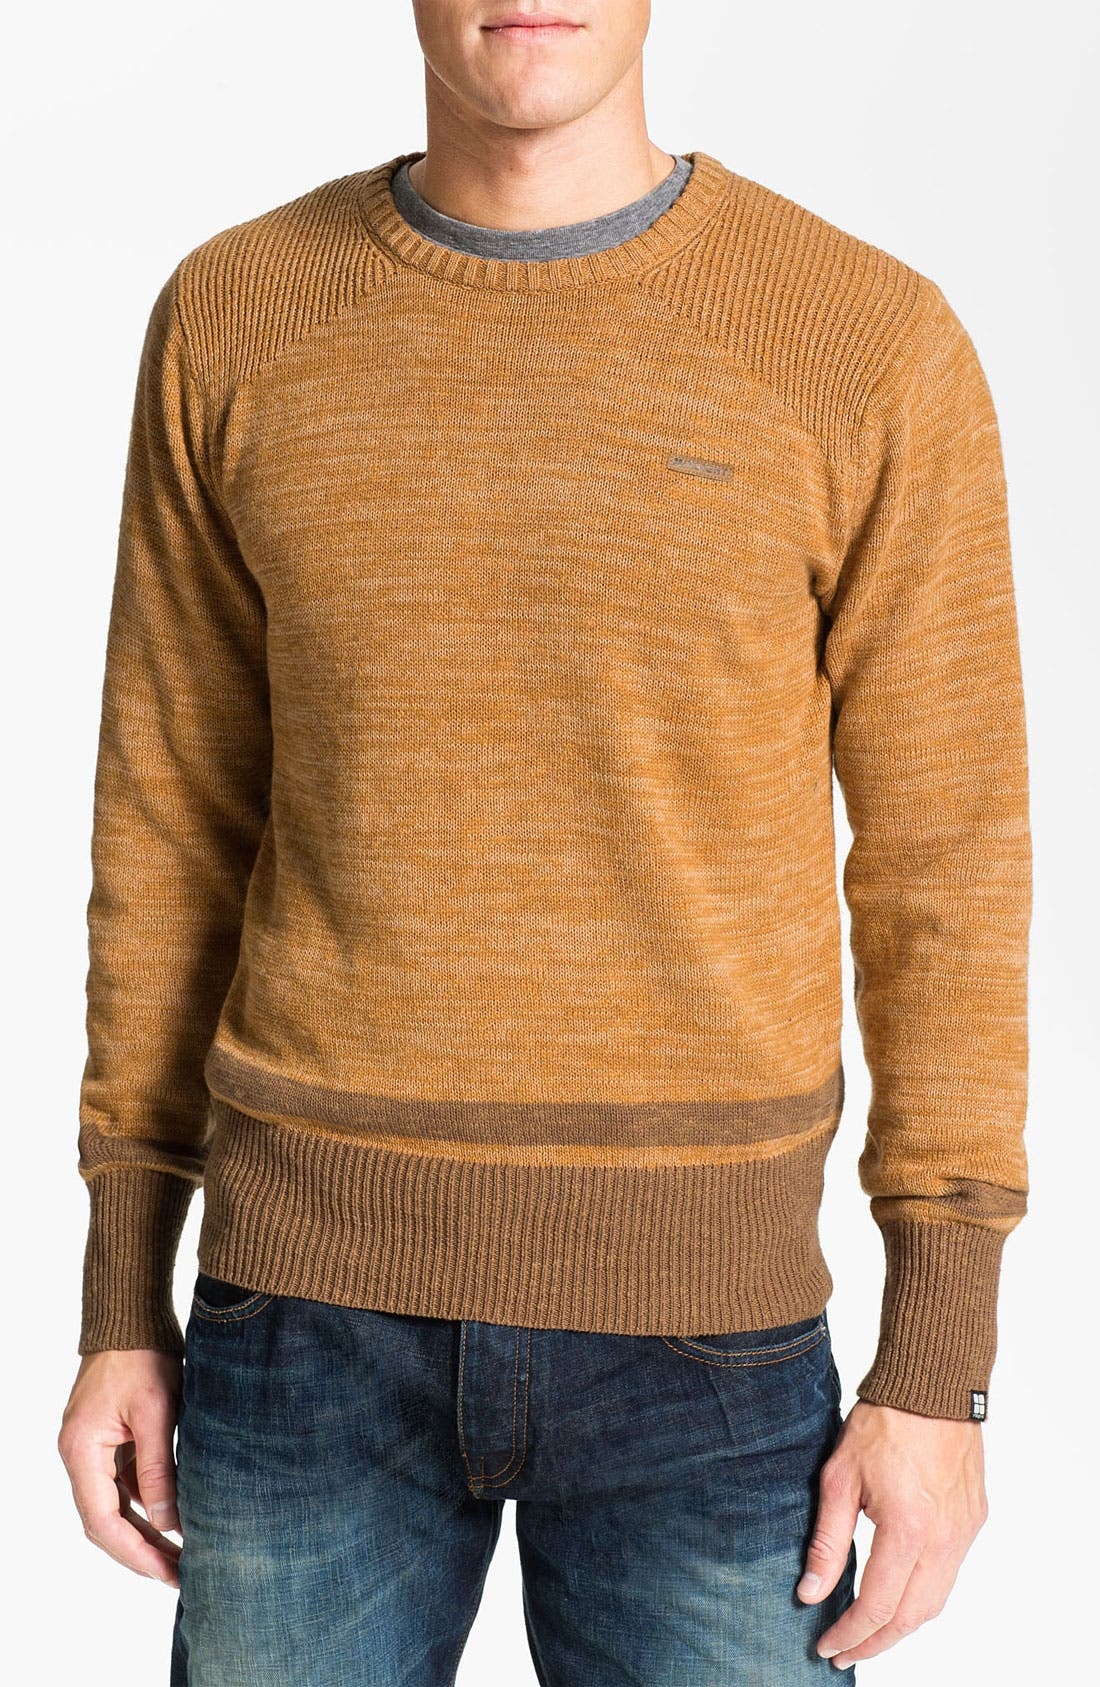 Alternate Image 1 Selected - Insight 'The Meek' Crewneck Sweater